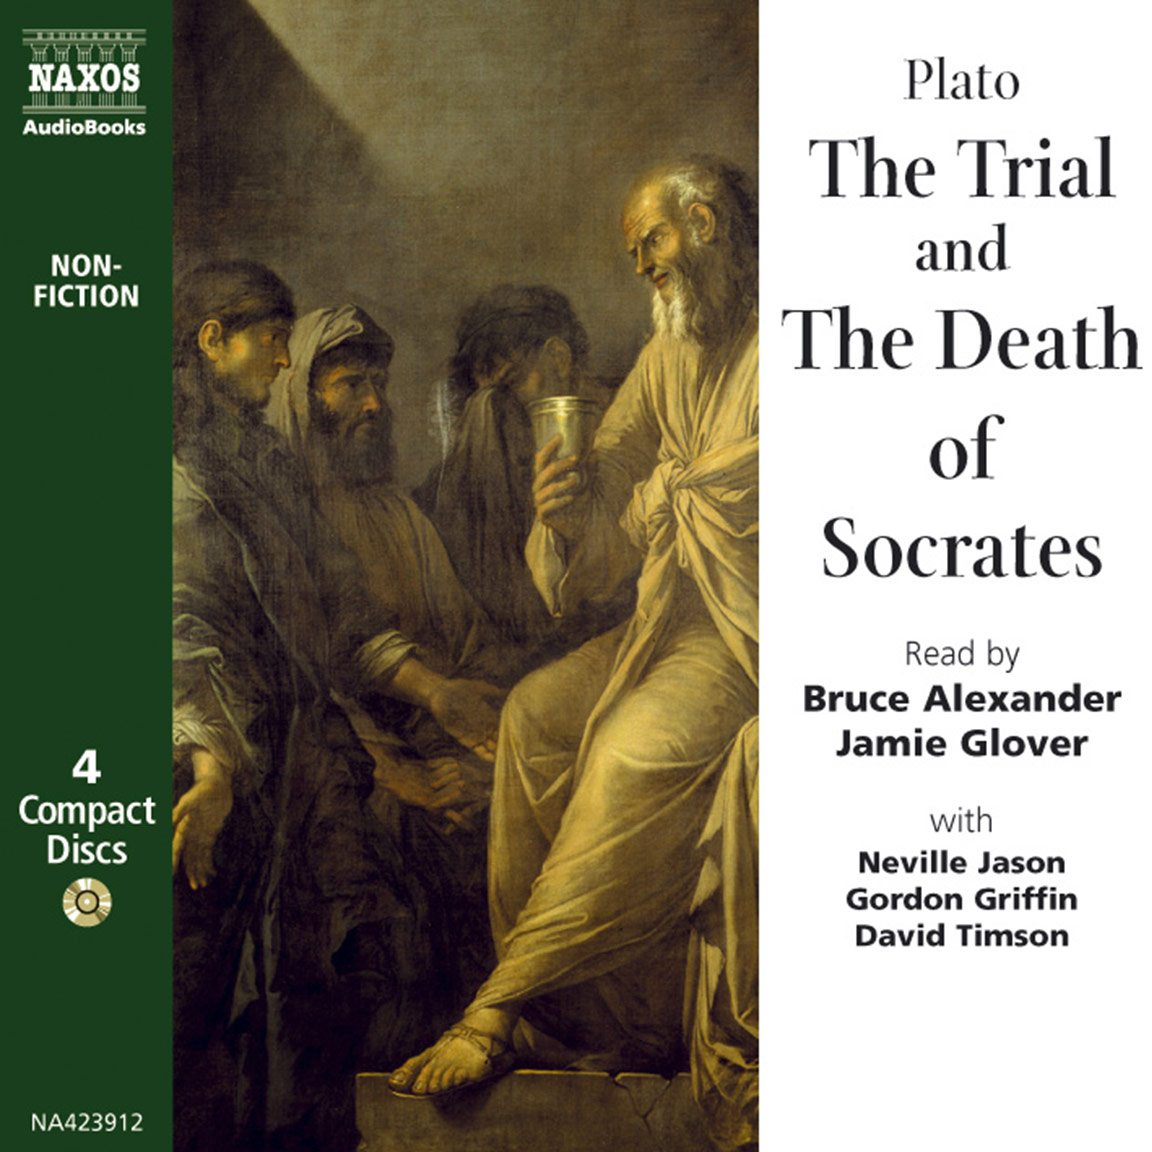 an analysis of the trail and death of socrates by plato Socrates: plato and aristophanes portrays socrates essay examples socrates, an ancient greek philosopher, was a man seen in various ways by many.